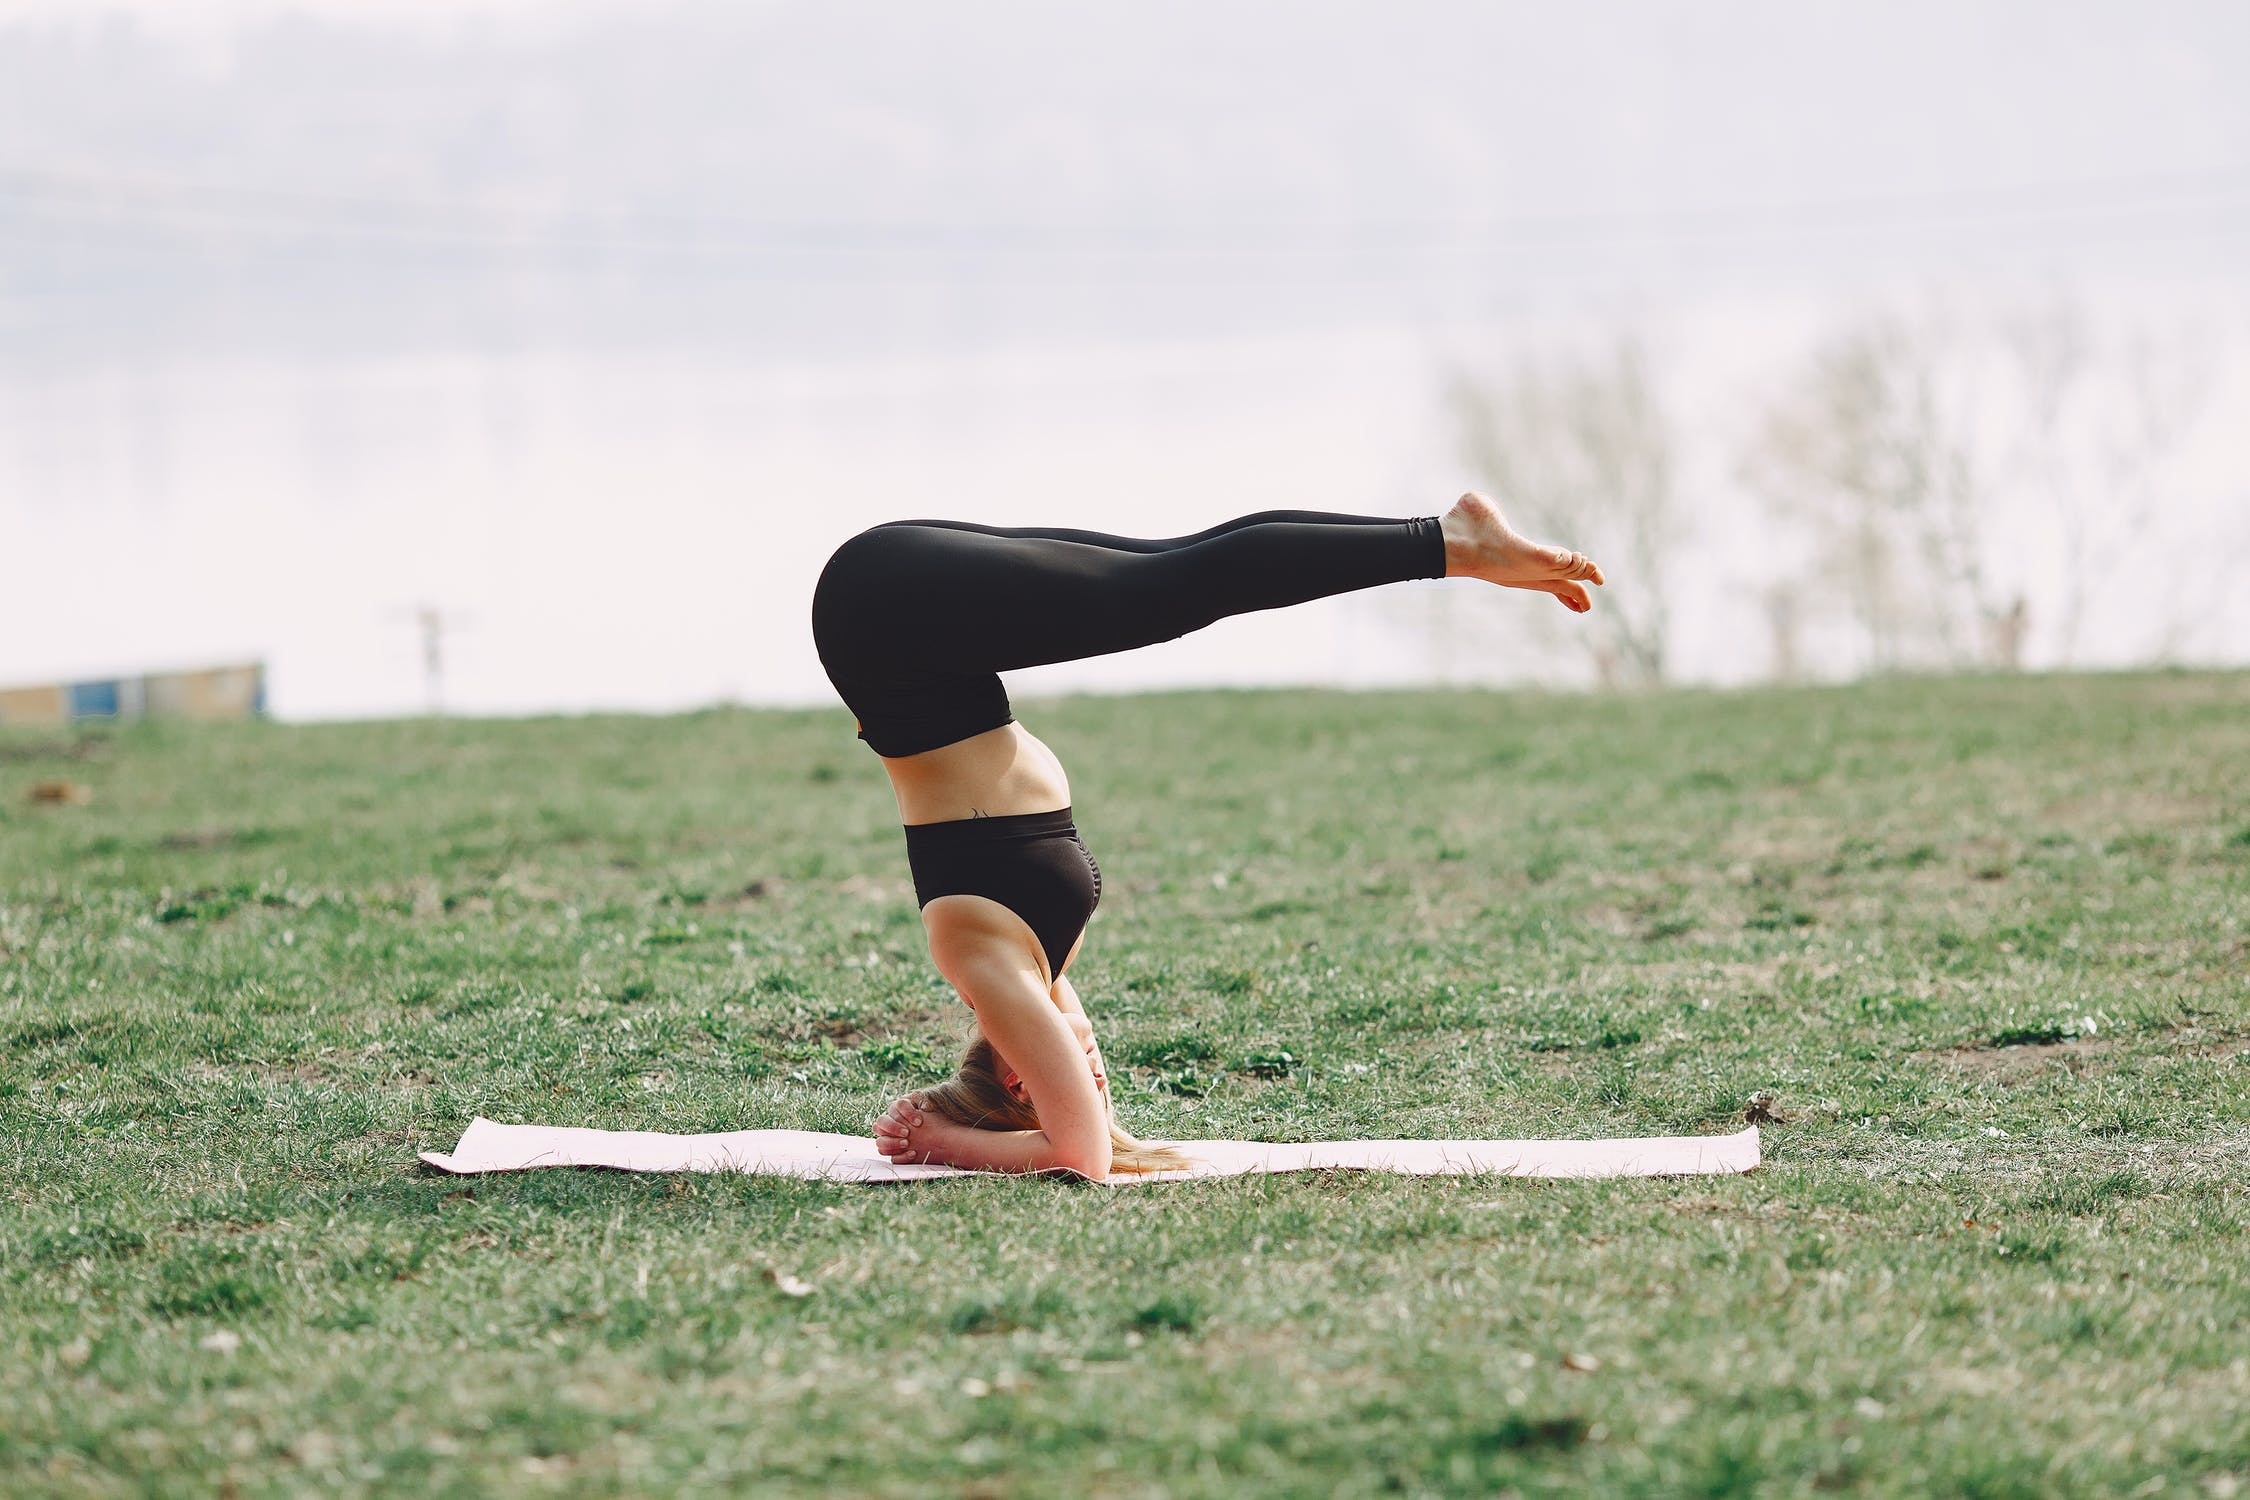 A woman performs a difficult yoga pose on a mat in the park.